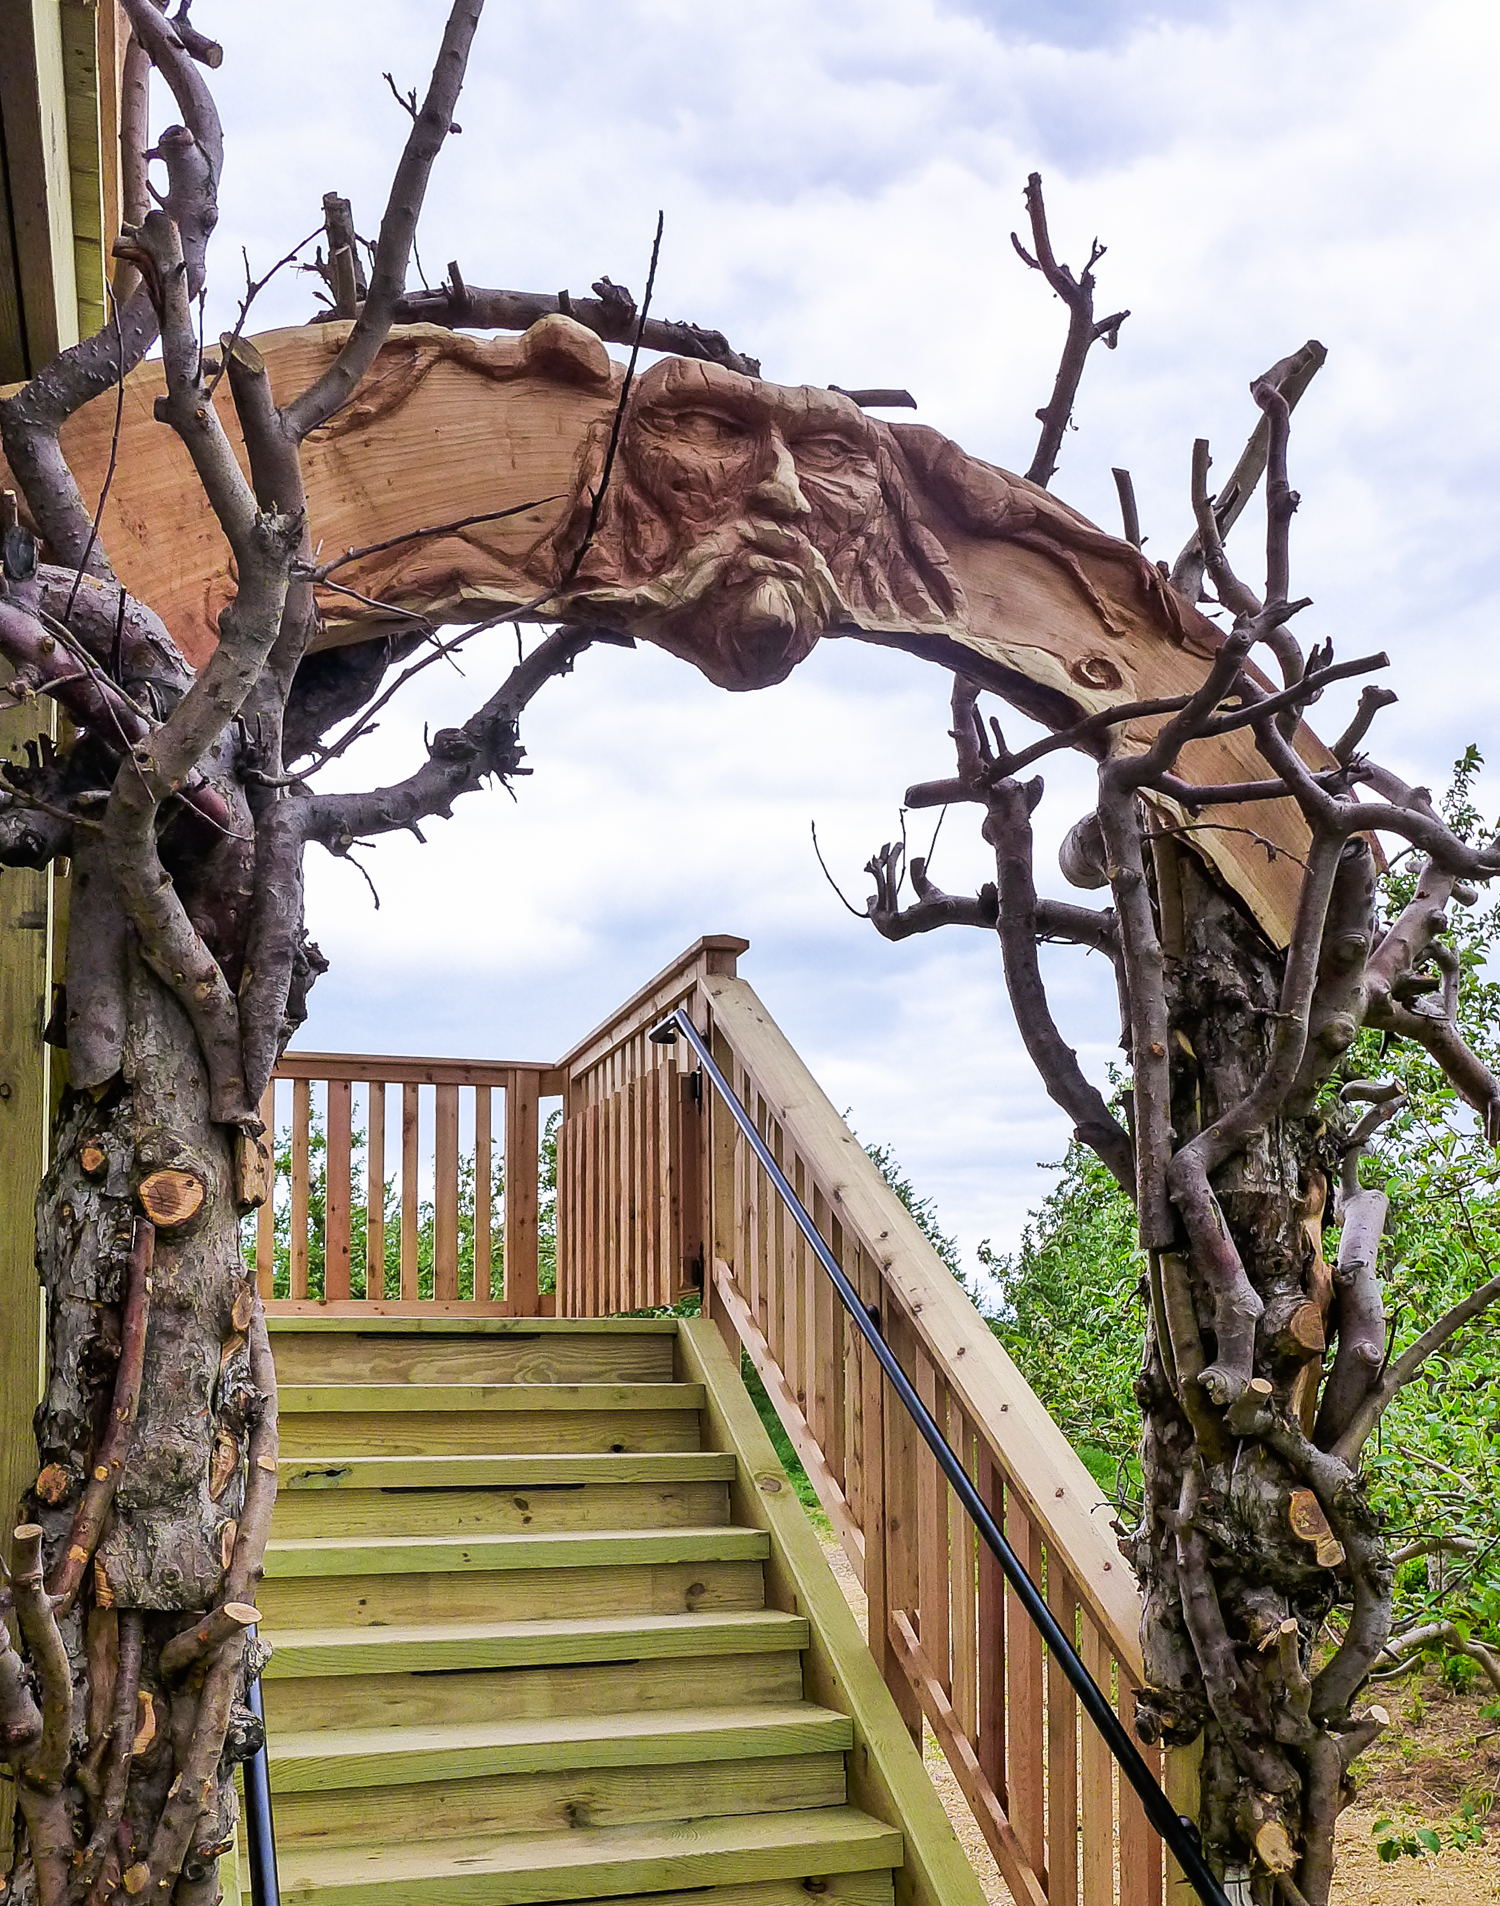 You might recognize Rolf's artwork from the  Angry Orchard treehouse  - he carved the face on the arch above the staircase.